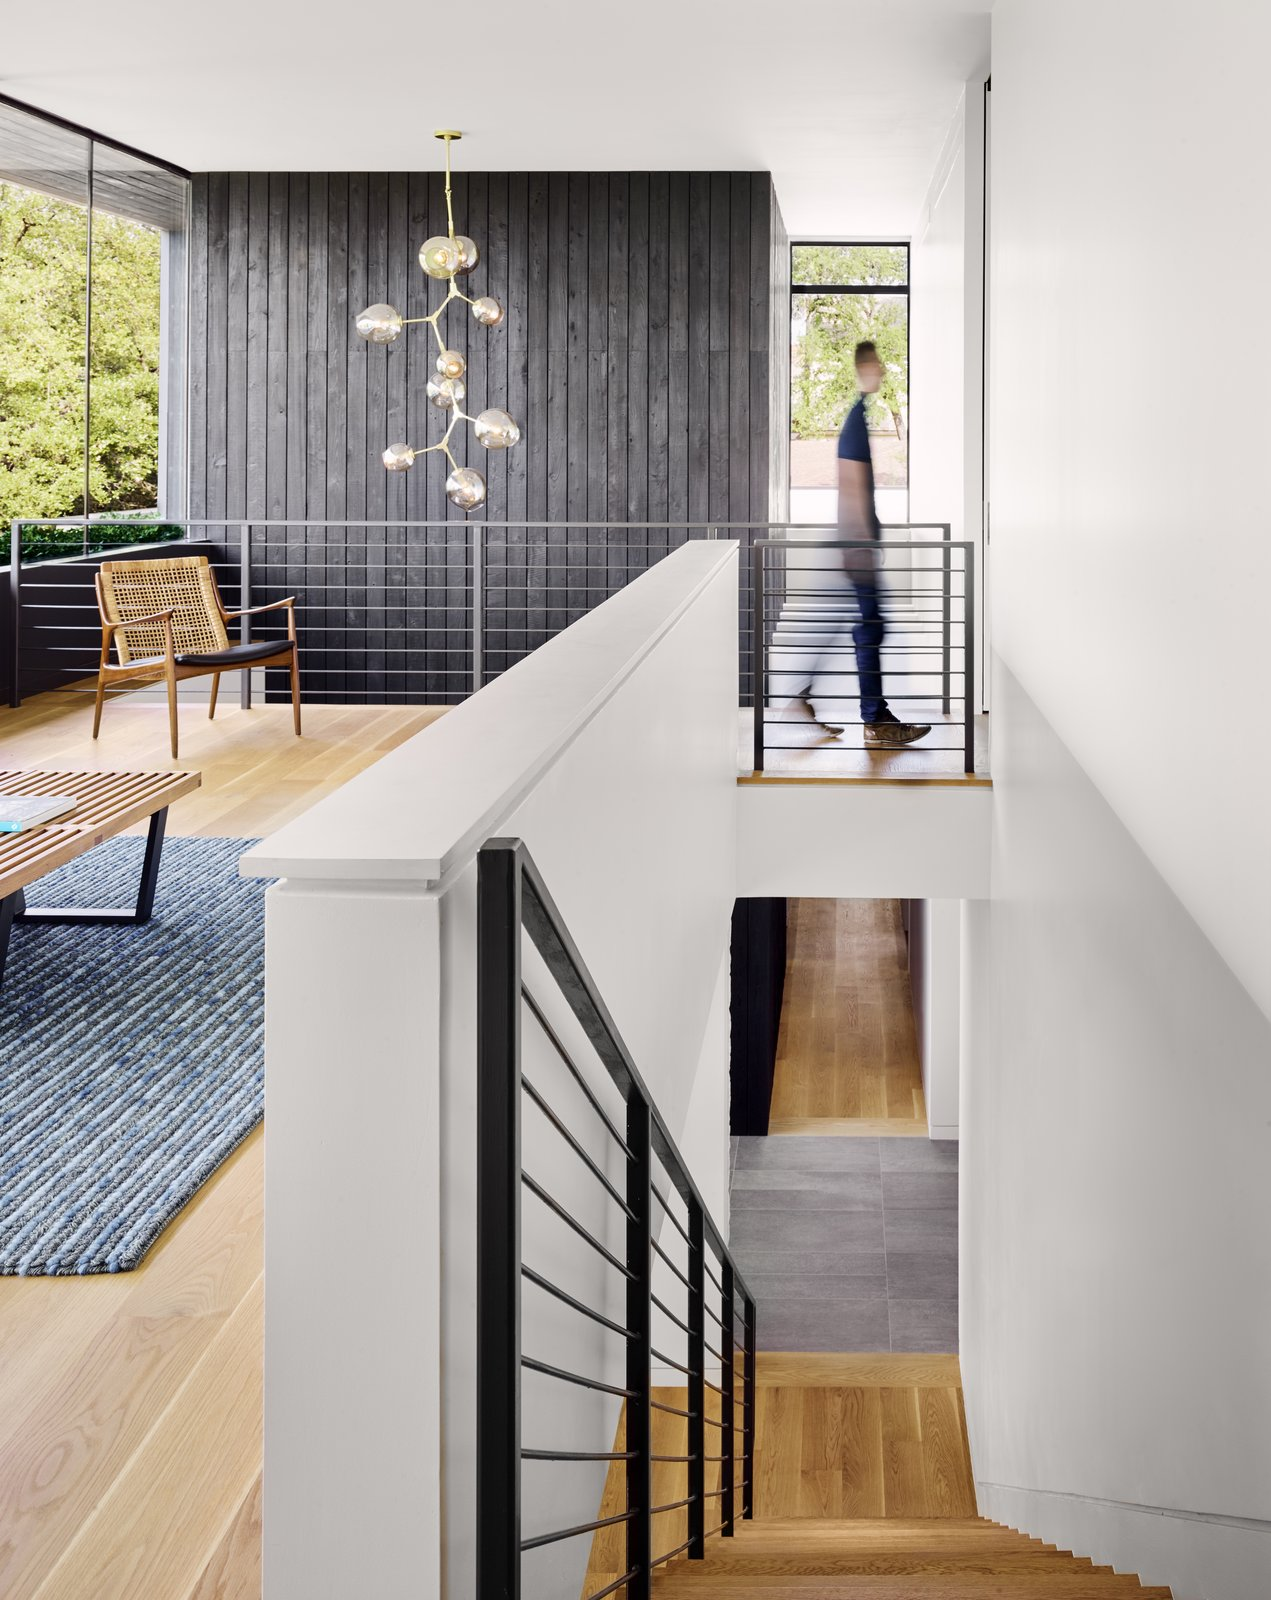 Staircase, Metal Railing, and Wood Tread The large windows open up the interiors by creating double-height spaces that draw natural light into the heart of the house.      from A Glass Addition Unveils Treetop Views For This Texan Home